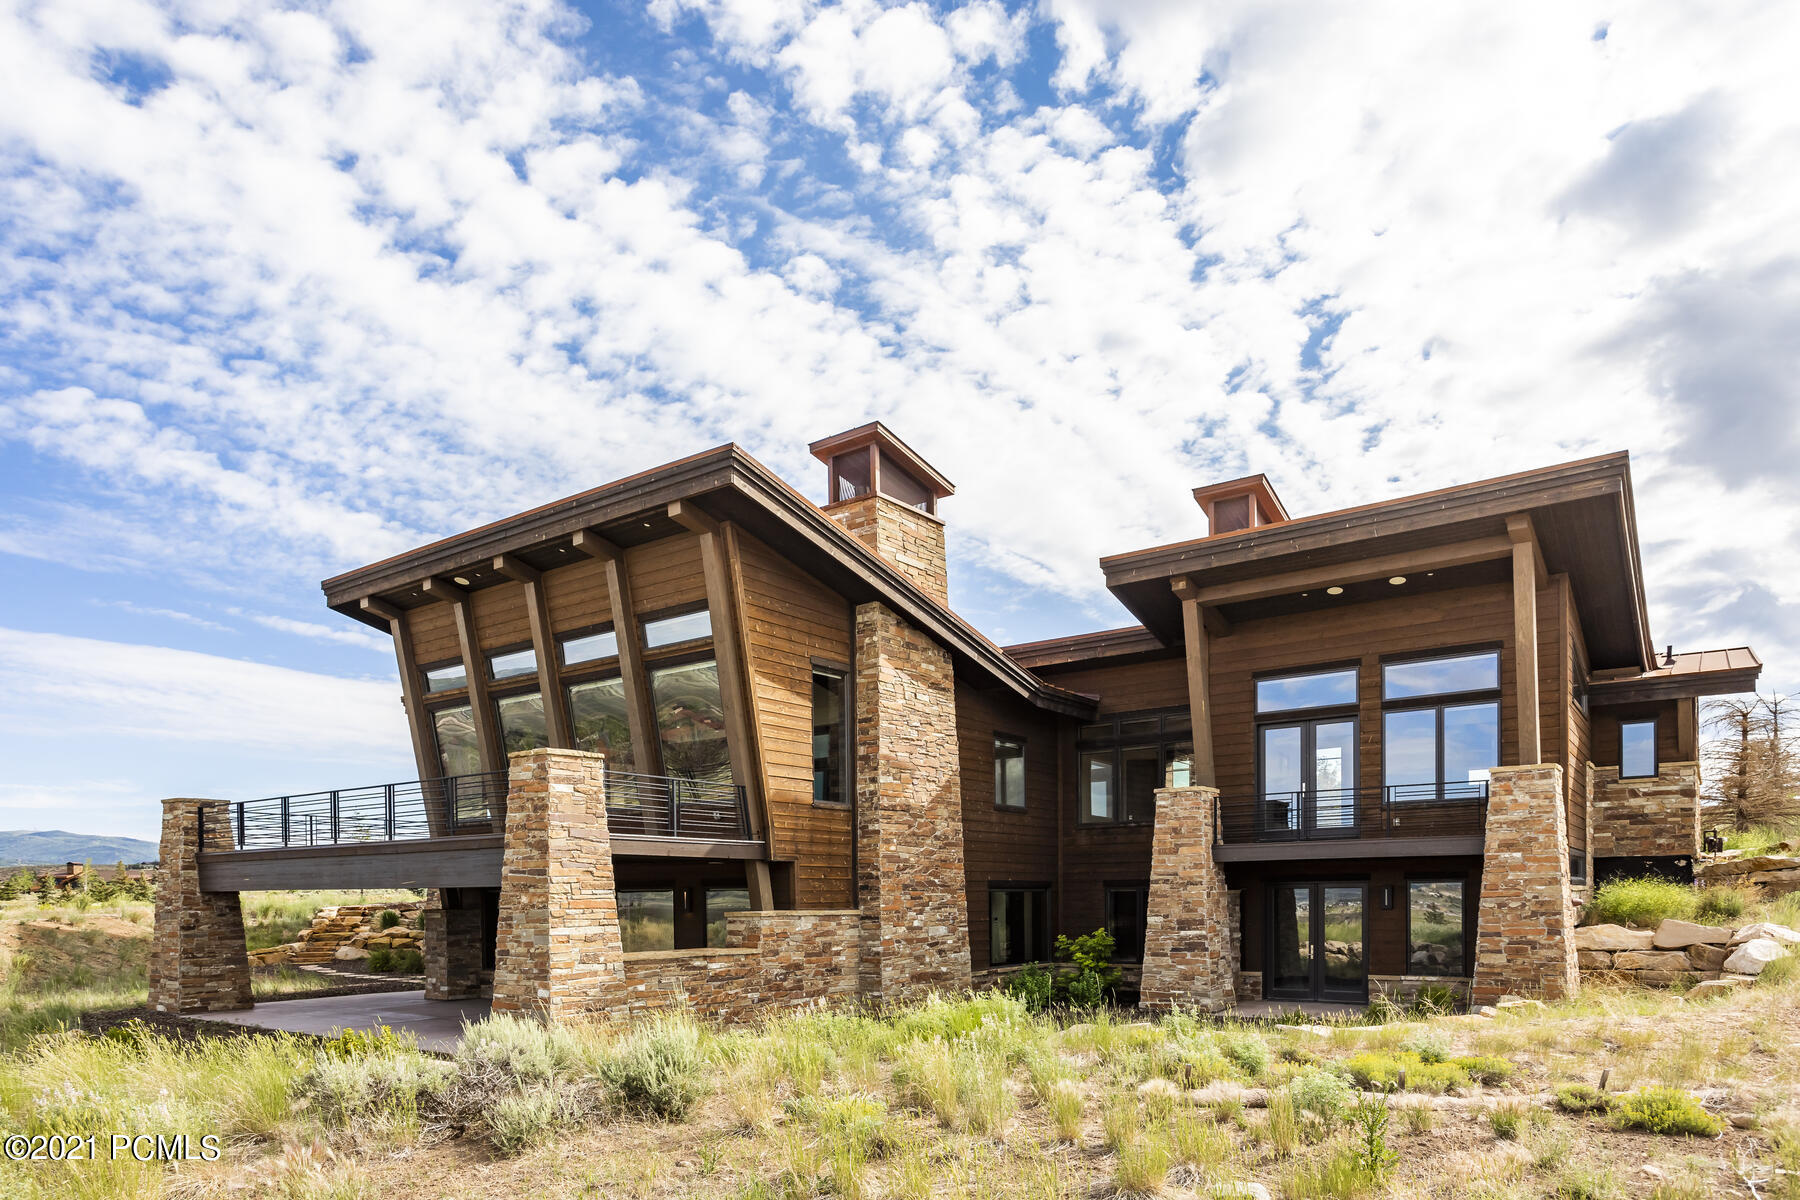 This fantastic mountain contemporary estate was designed with the outdoors in mind to capitalize on the panoramic views of Park City's three world-class ski resorts. The vaulted ceiling, oversized windows & la cantina sliding wall facilitate the ultimate in peaceful mountain relaxation. Features include chef's kitchen, thoughtful open floor plan, main level living, oversized windows for abundant light, and an extensive theatre with wet bar and lower level walk-out designed for year-round entertaining. Situated in Promontory, this private gated golf club and residential community feature 2 world-class golf courses, spa, workout facilities, kids cabin, multiple pools, outfitters cabin, and equestrian facilities, several clubhouses, five restaurants, and its new addition, the Promontory Beach House. This home is a must-see for the ultimate in luxury and amenities. Golf Membership available.